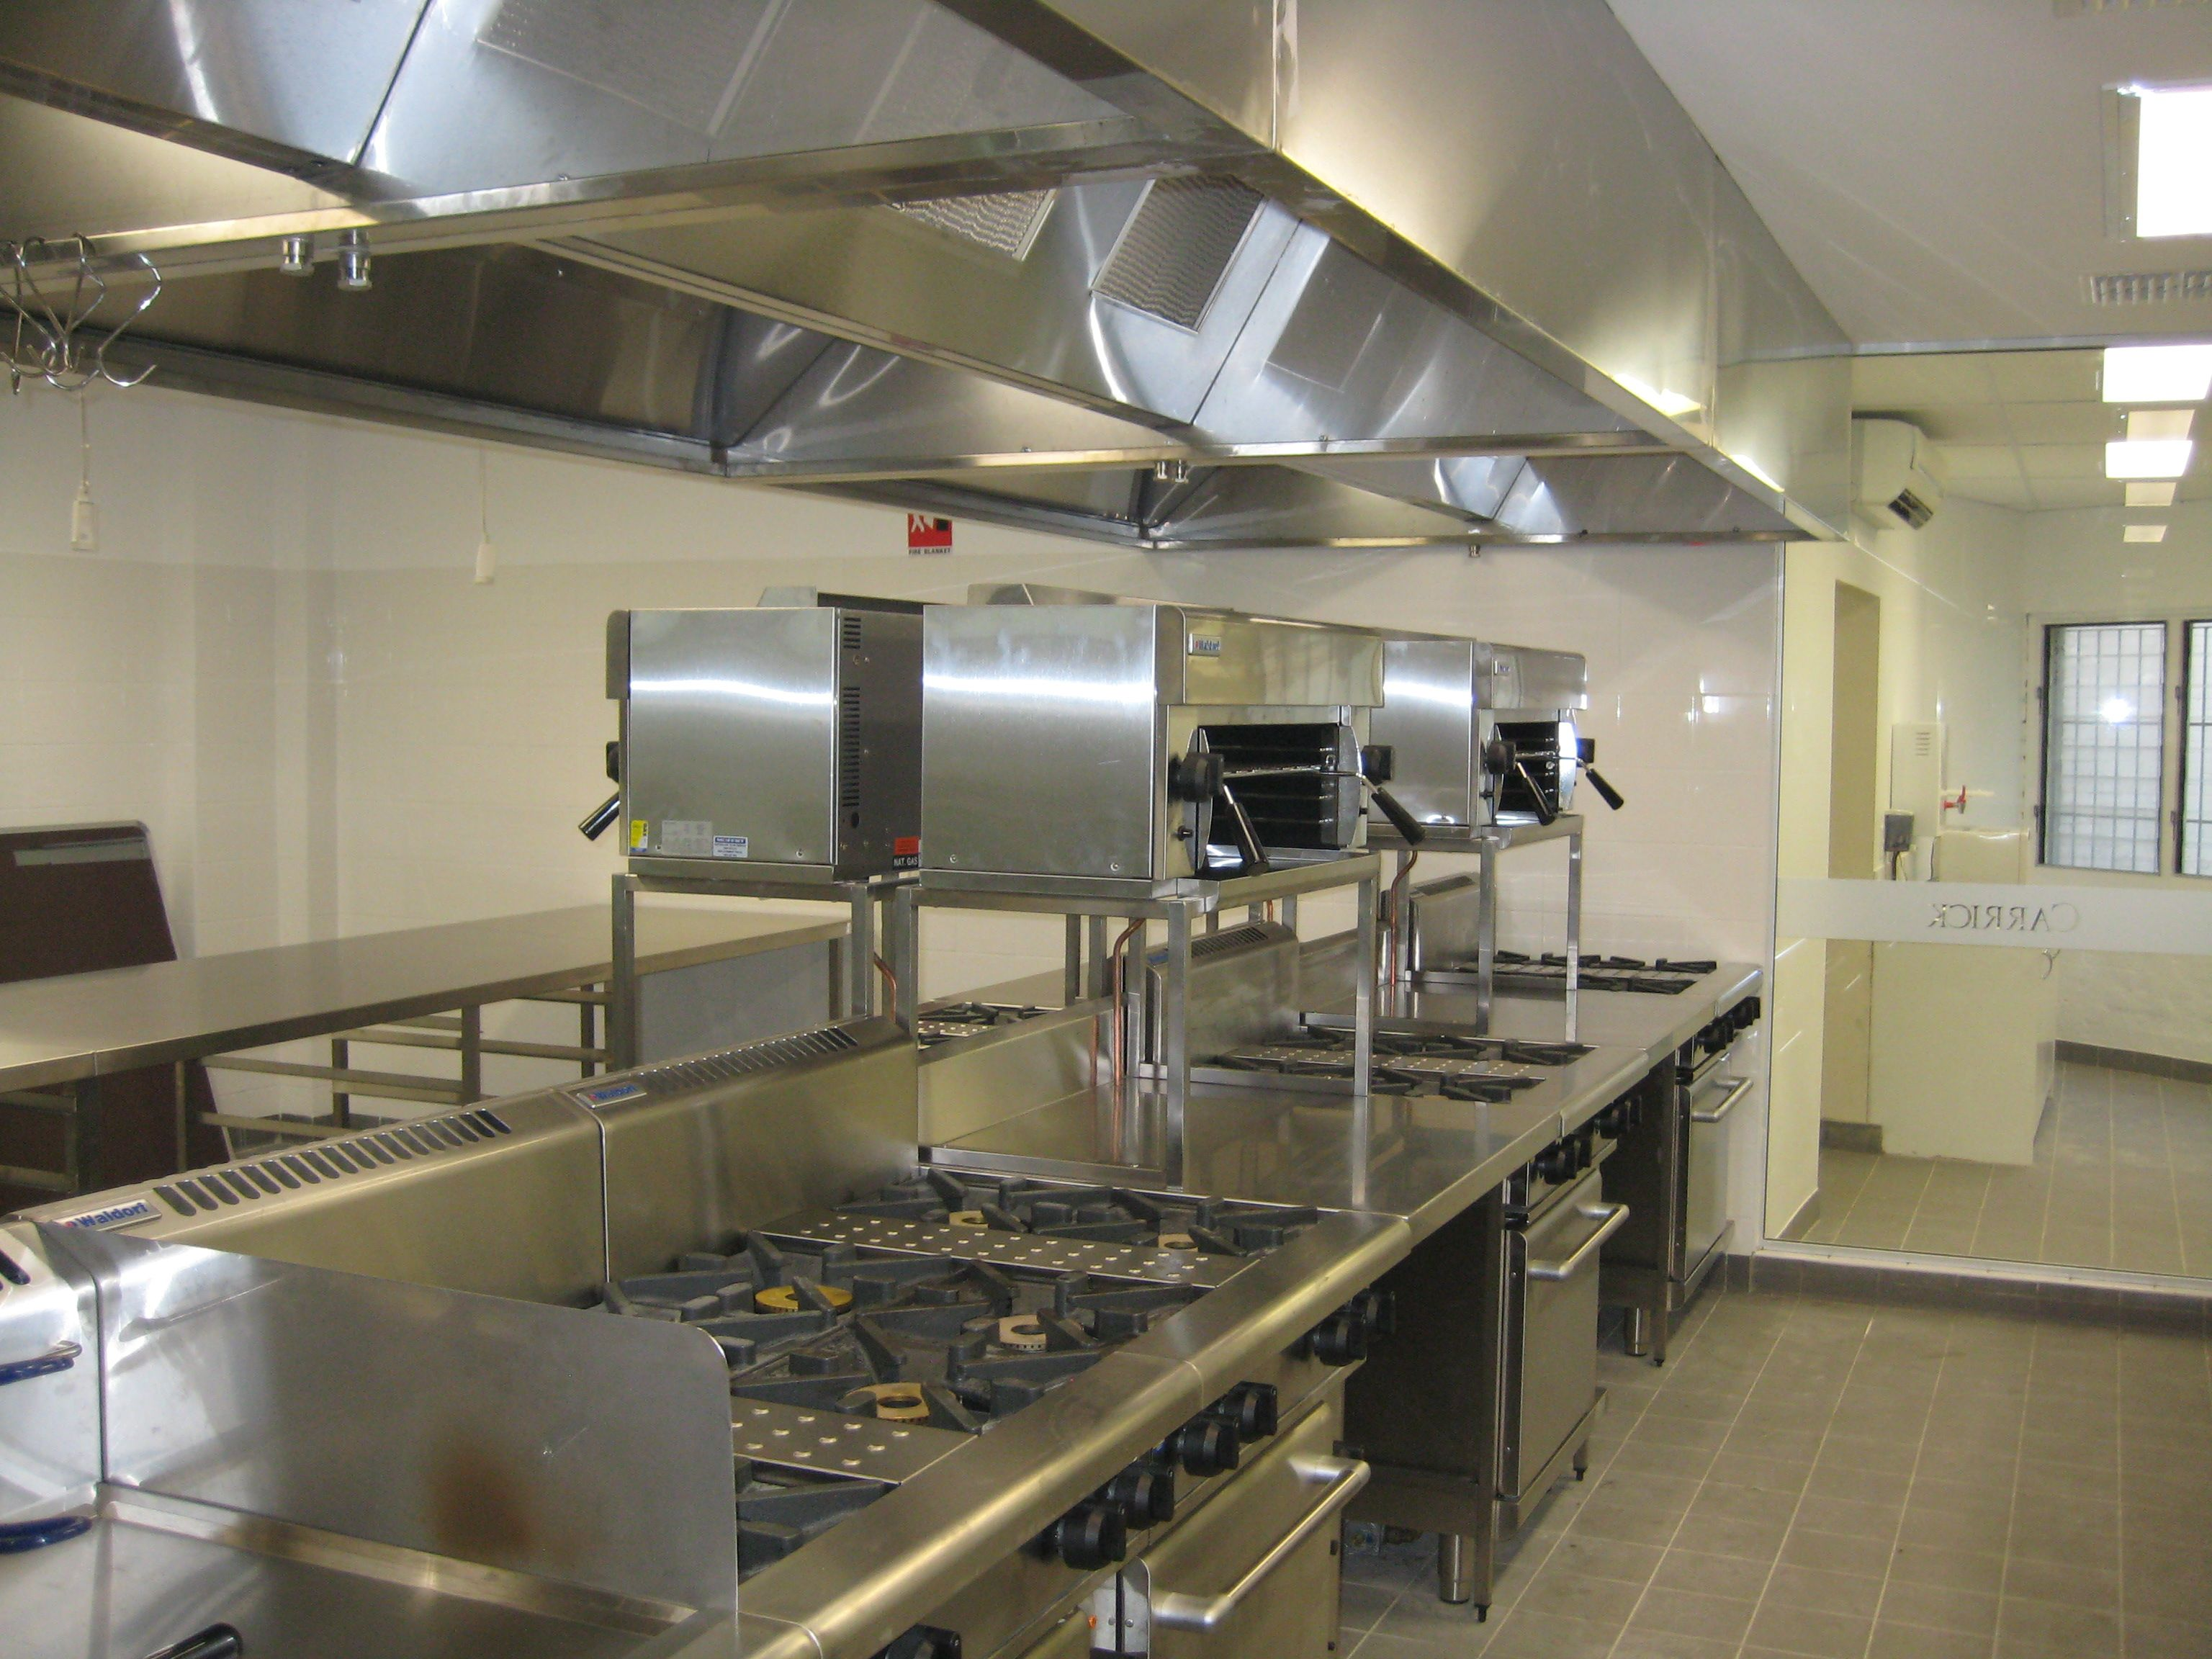 Restaurant Kitchen Hood diner exhaust range hood | restaurant hood systems and fire